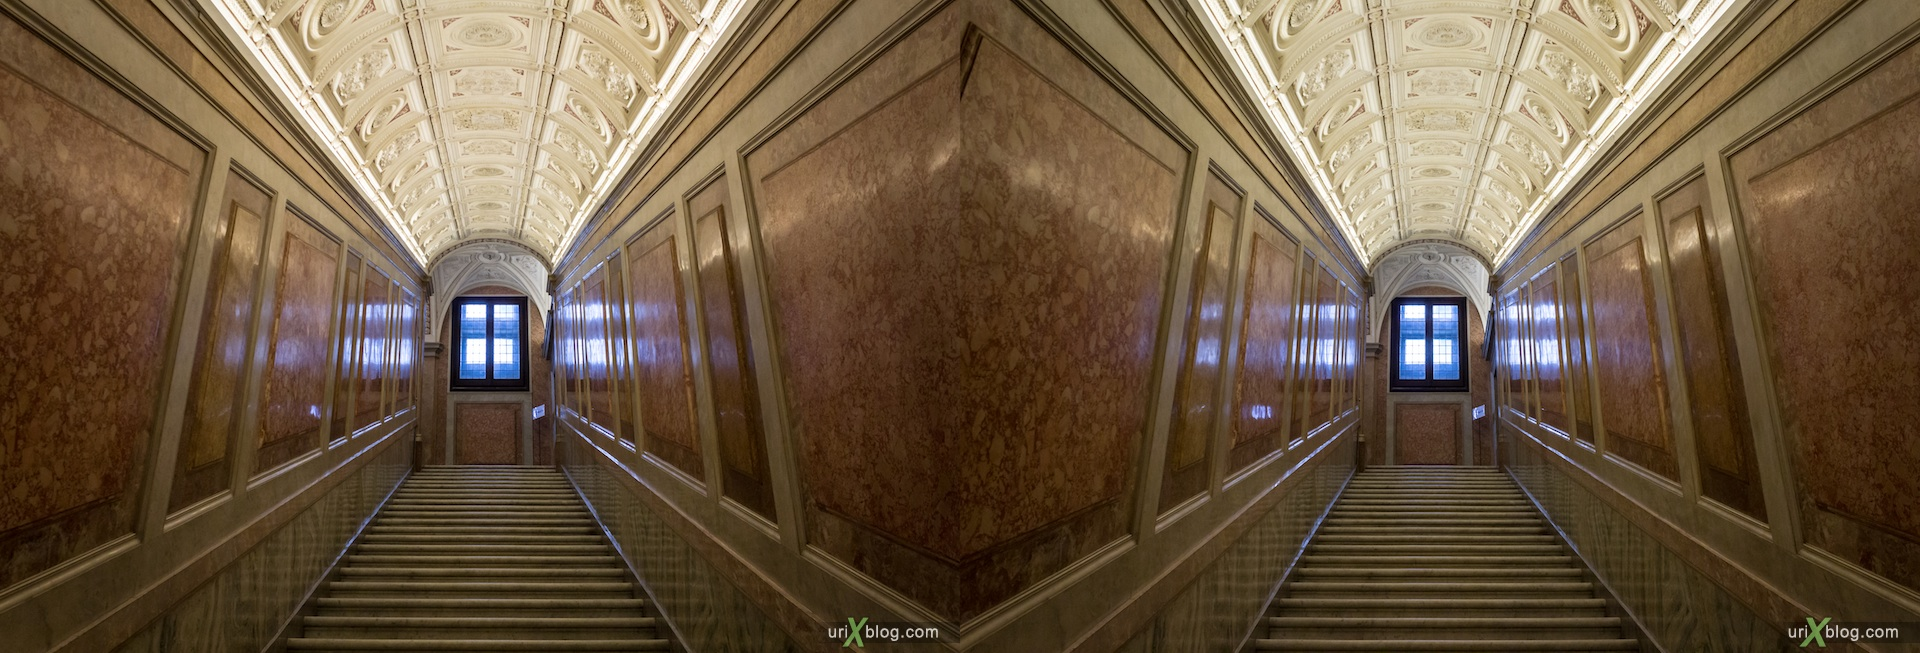 2012, Villa Farnesina, stairs, Rome, Italy, Europe, 3D, stereo pair, cross-eyed, crossview, cross view stereo pair